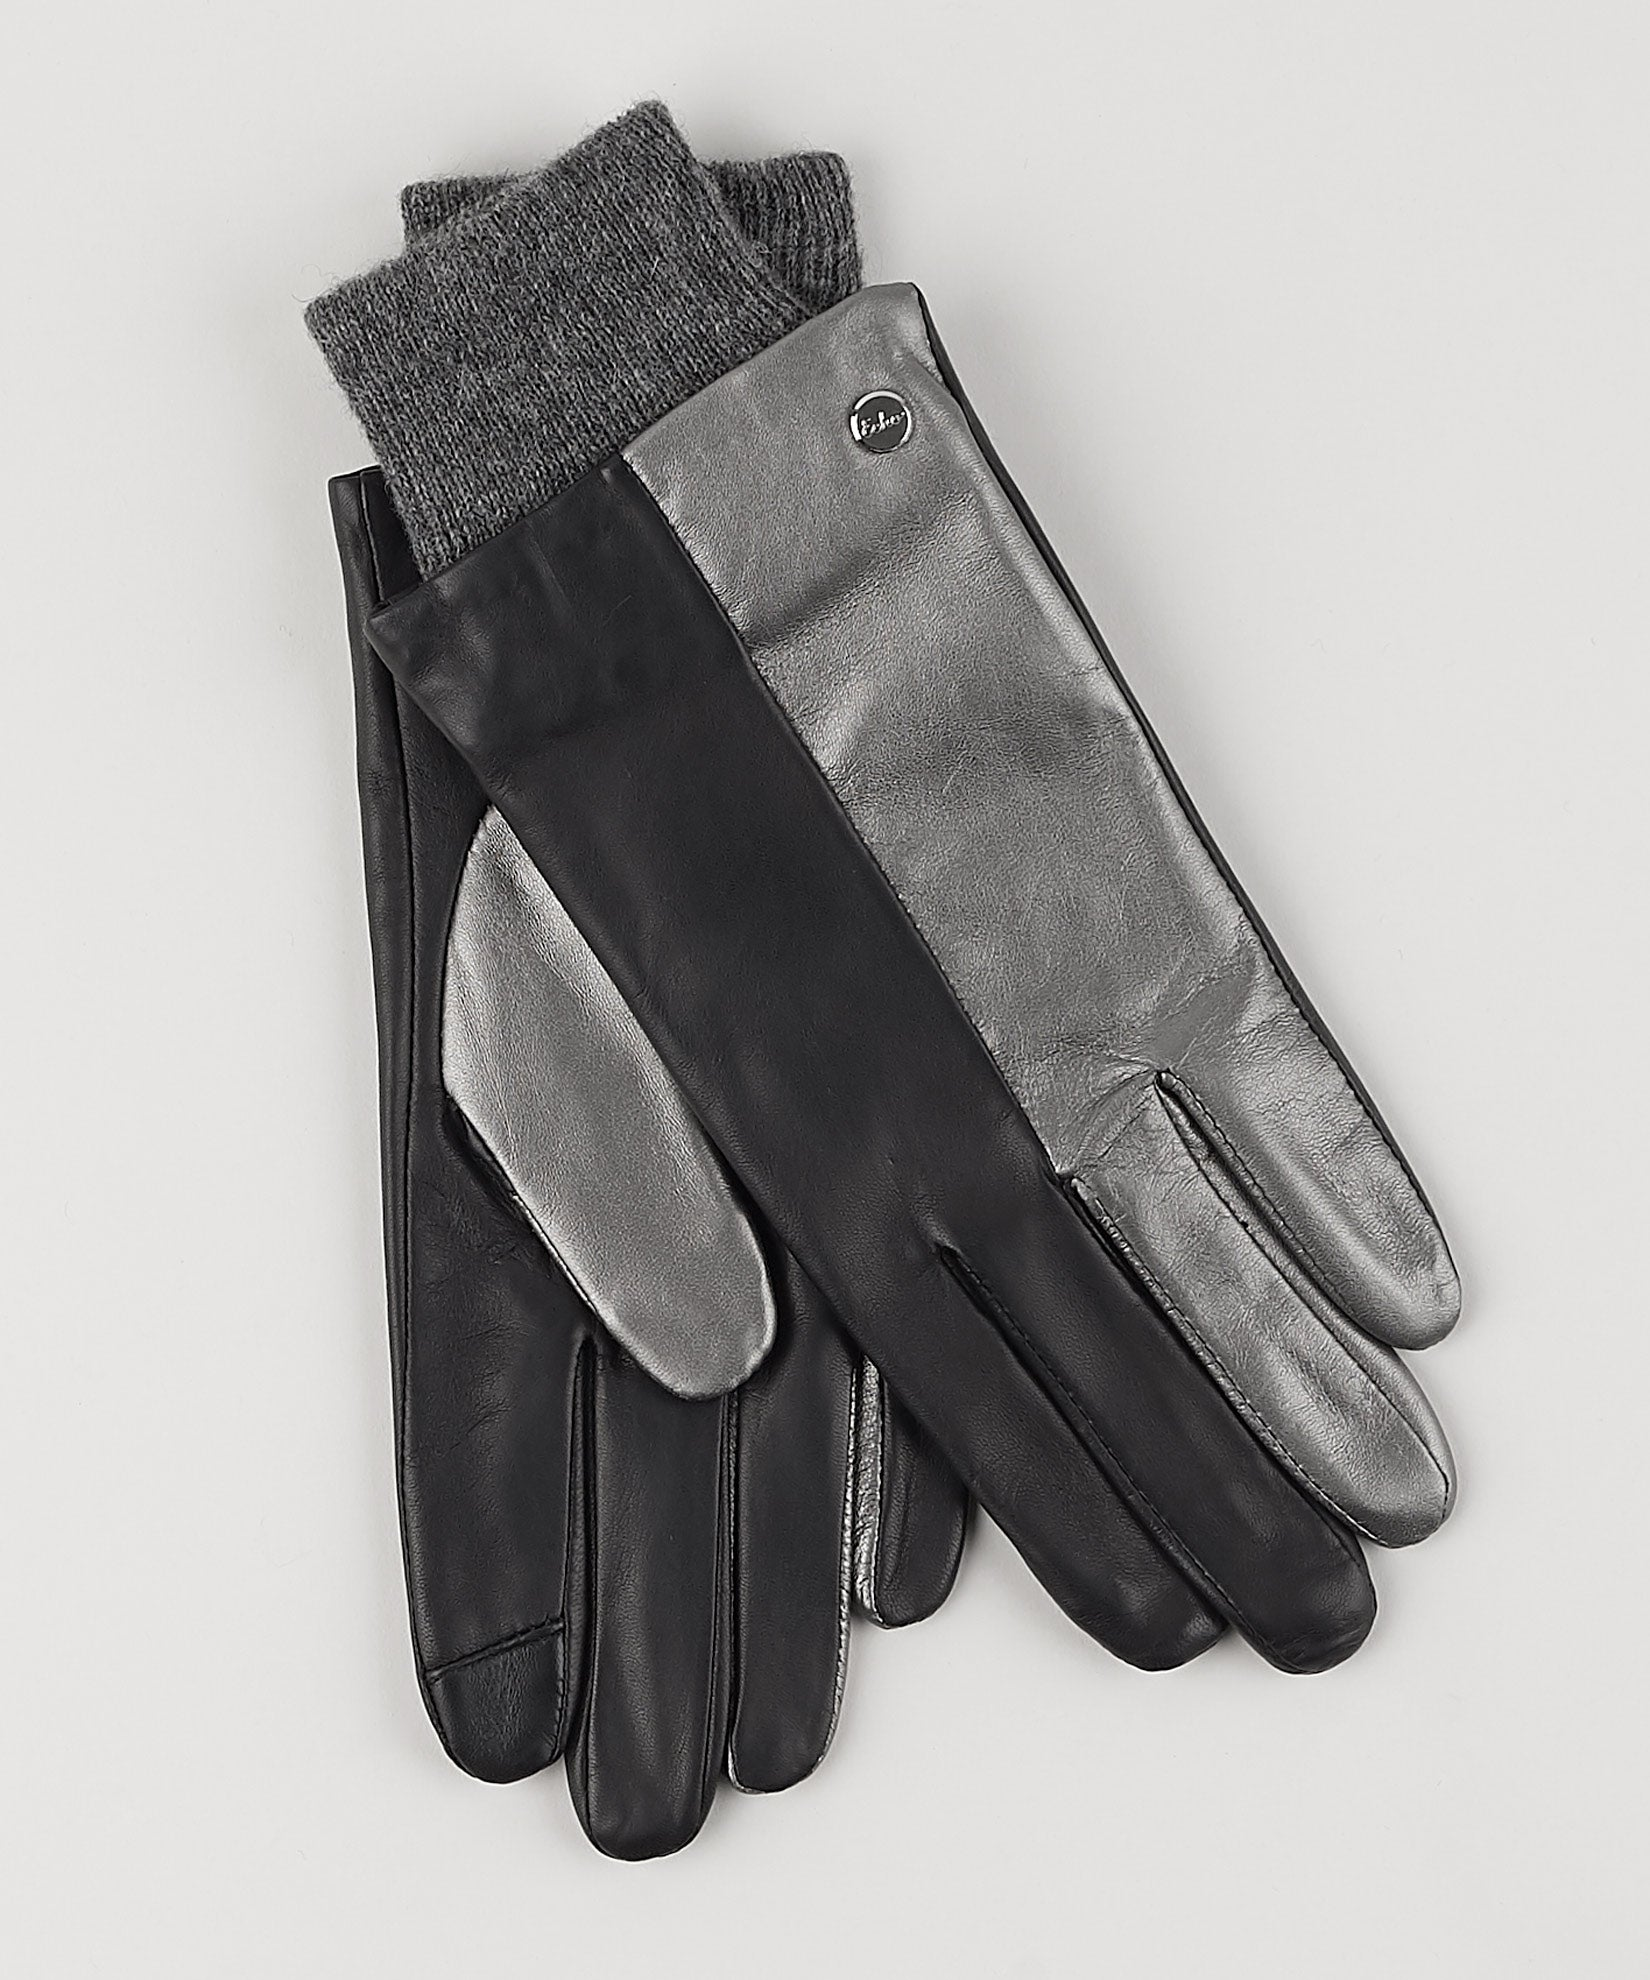 Black - Leather Colorblock Glove